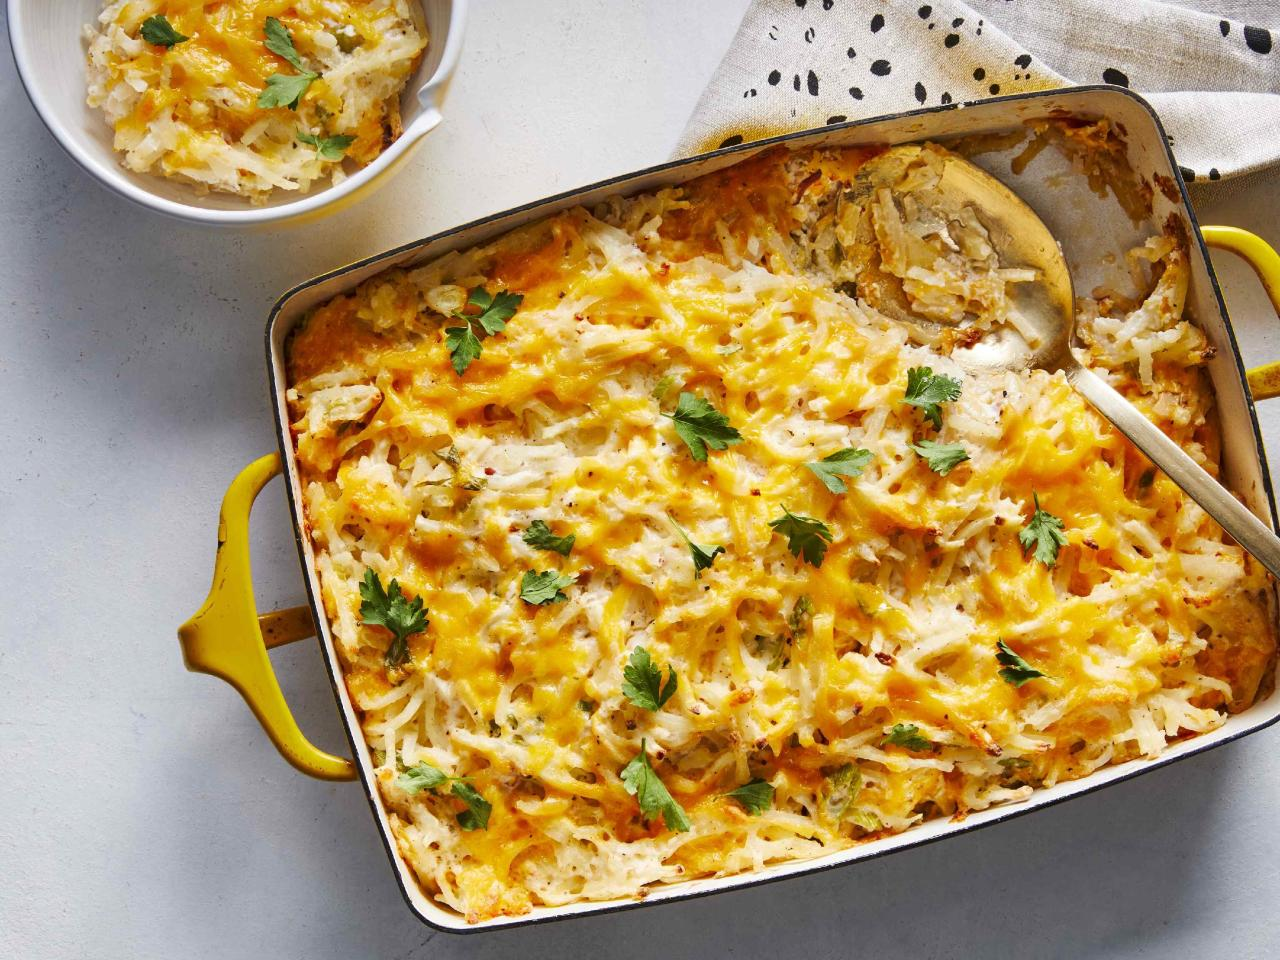 """<p>This Cheesy Potato Bake makes a great potluck dish or side for brunch. It's super easy to mix together and throw in the oven, and you can even assemble it a day ahead and bake just before serving. You can use any brand of shredded hash browns, or make it with fresh potatoes that you peel, boil and dice beforehand. Cream of bacon soup is readily available, even if you've never heard of it.</p> <p><a href=""""https://www.myrecipes.com/recipe/cheesy-potato-bake"""">Cheesy Potato Bake Recipe</a></p>"""